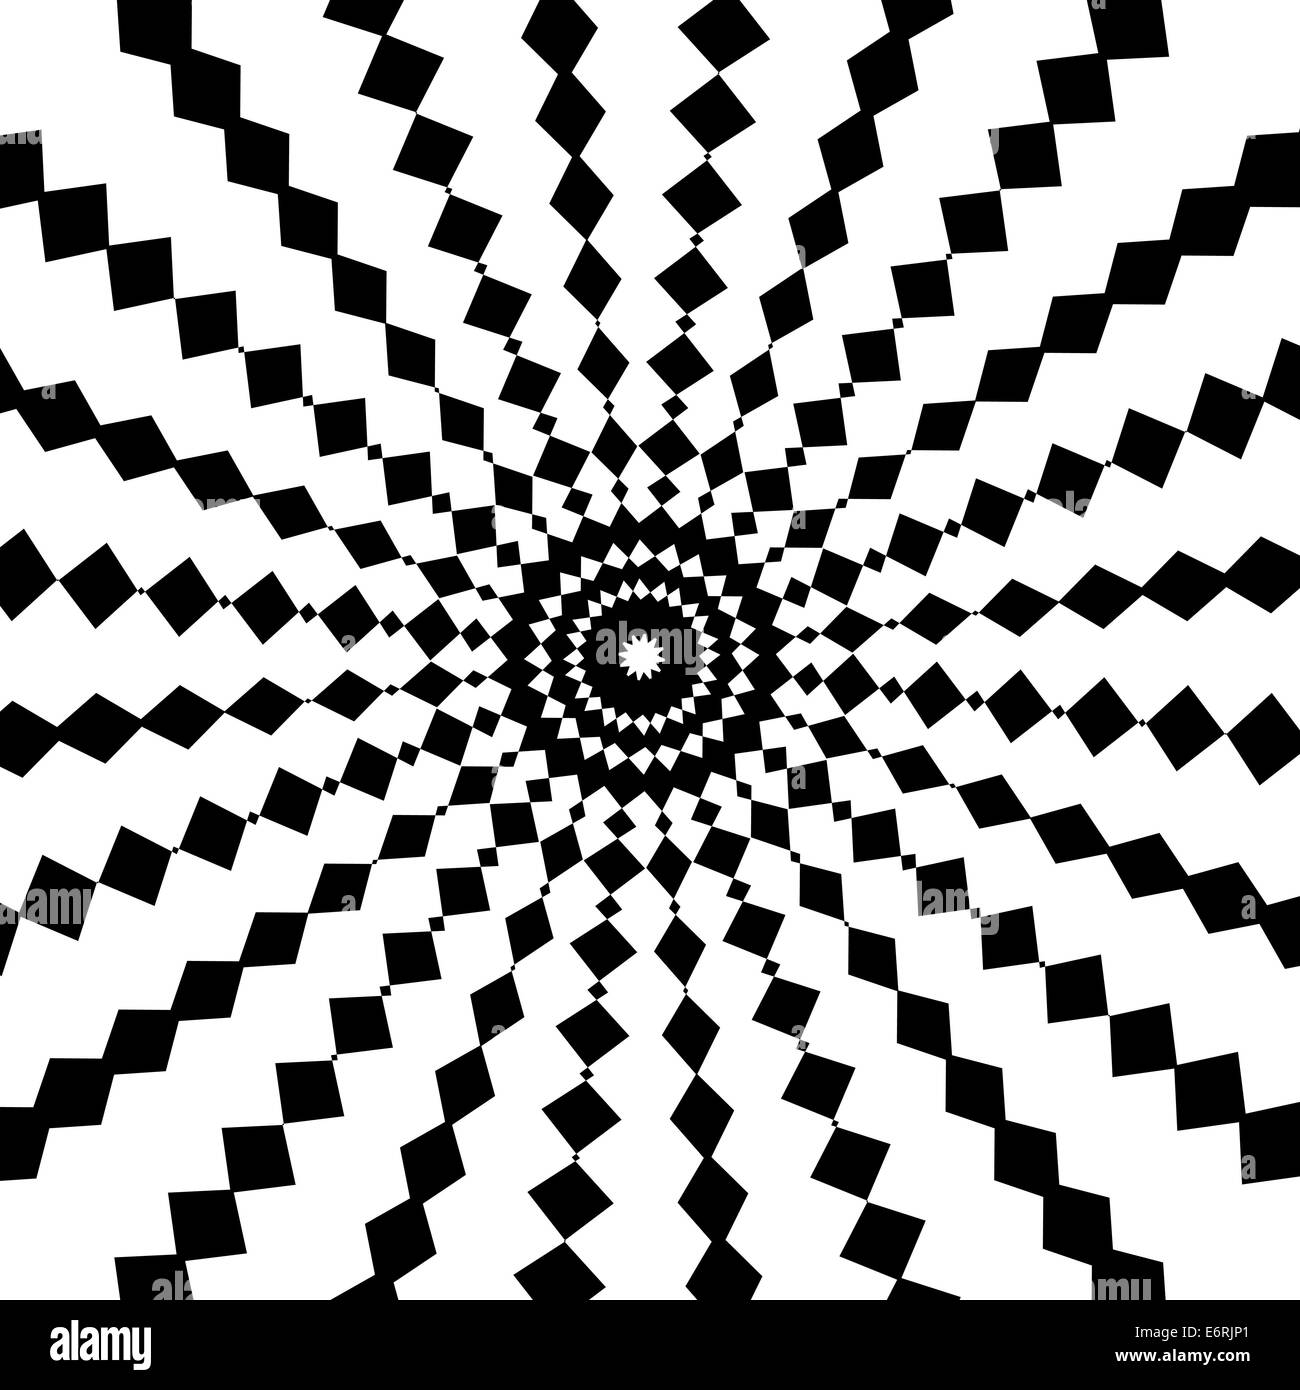 1970s wallpaper black and white stock photos images alamy 70s Theme Background black and white abstract psychedelic art background vector illu stock image